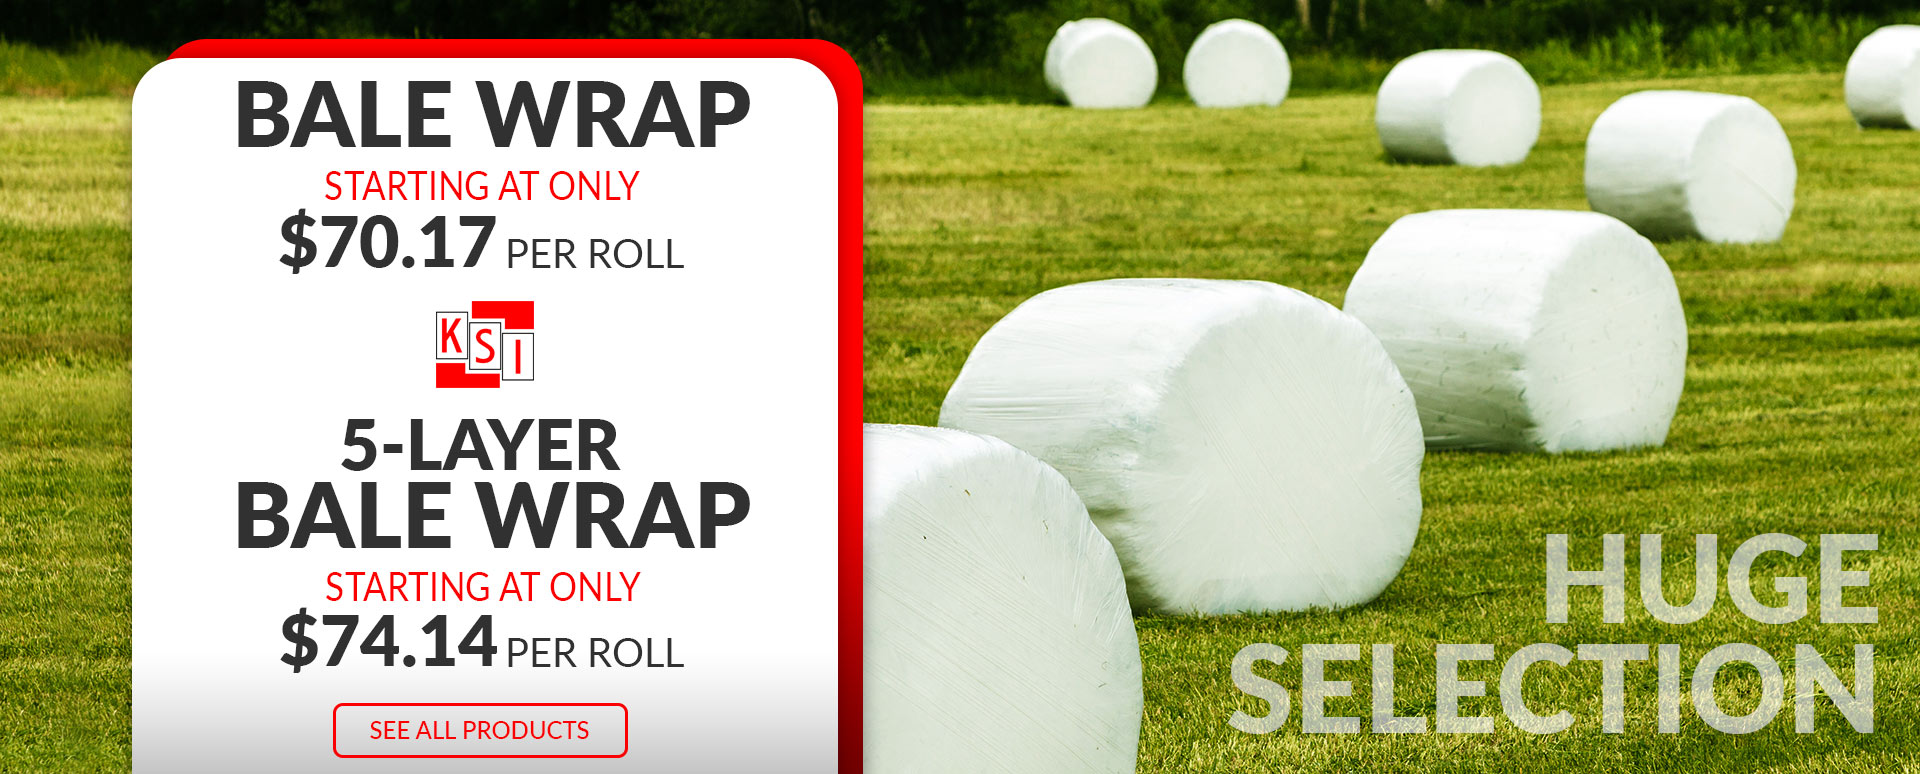 KSI Supply - 5-Layer Bale Wraps Huge Selection